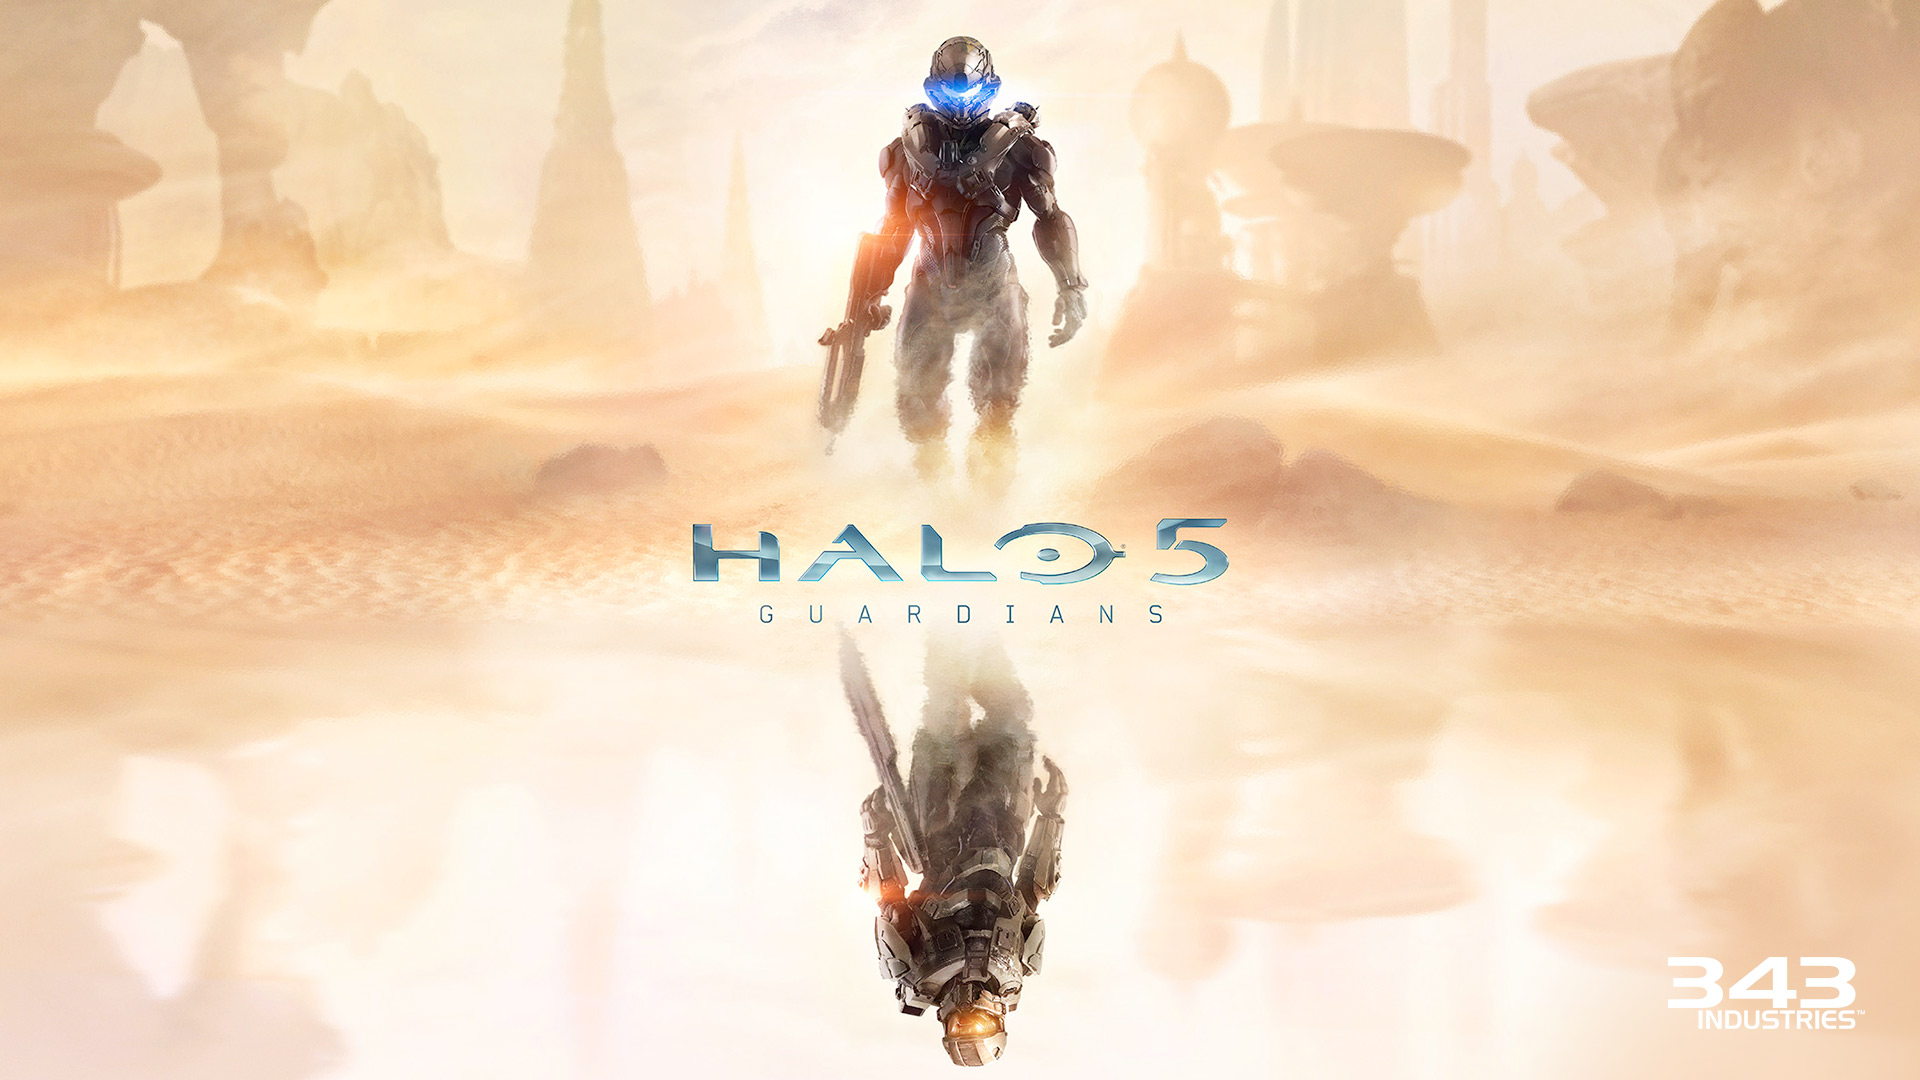 E3 2015: Halo 5 Guardians gets new footage and mode